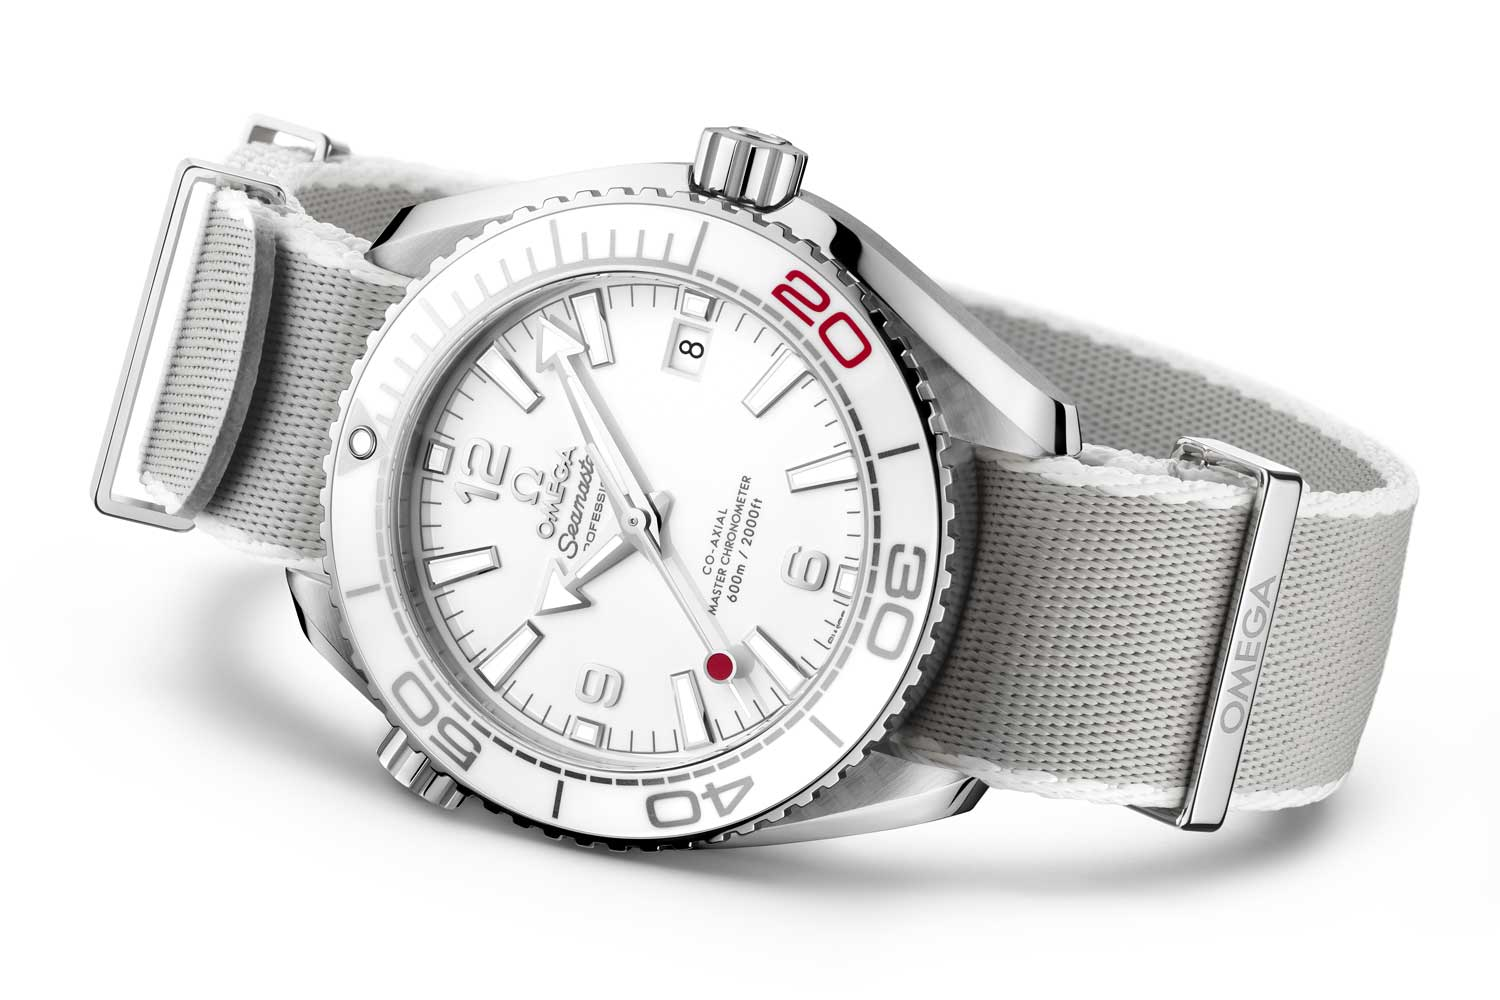 """Limited to 2,020 pieces, the Seamaster Diver """"Tokyo 2020"""" Edition features a polished white ceramic dial with a red-tipped central seconds hand to represent the flag of Japan."""